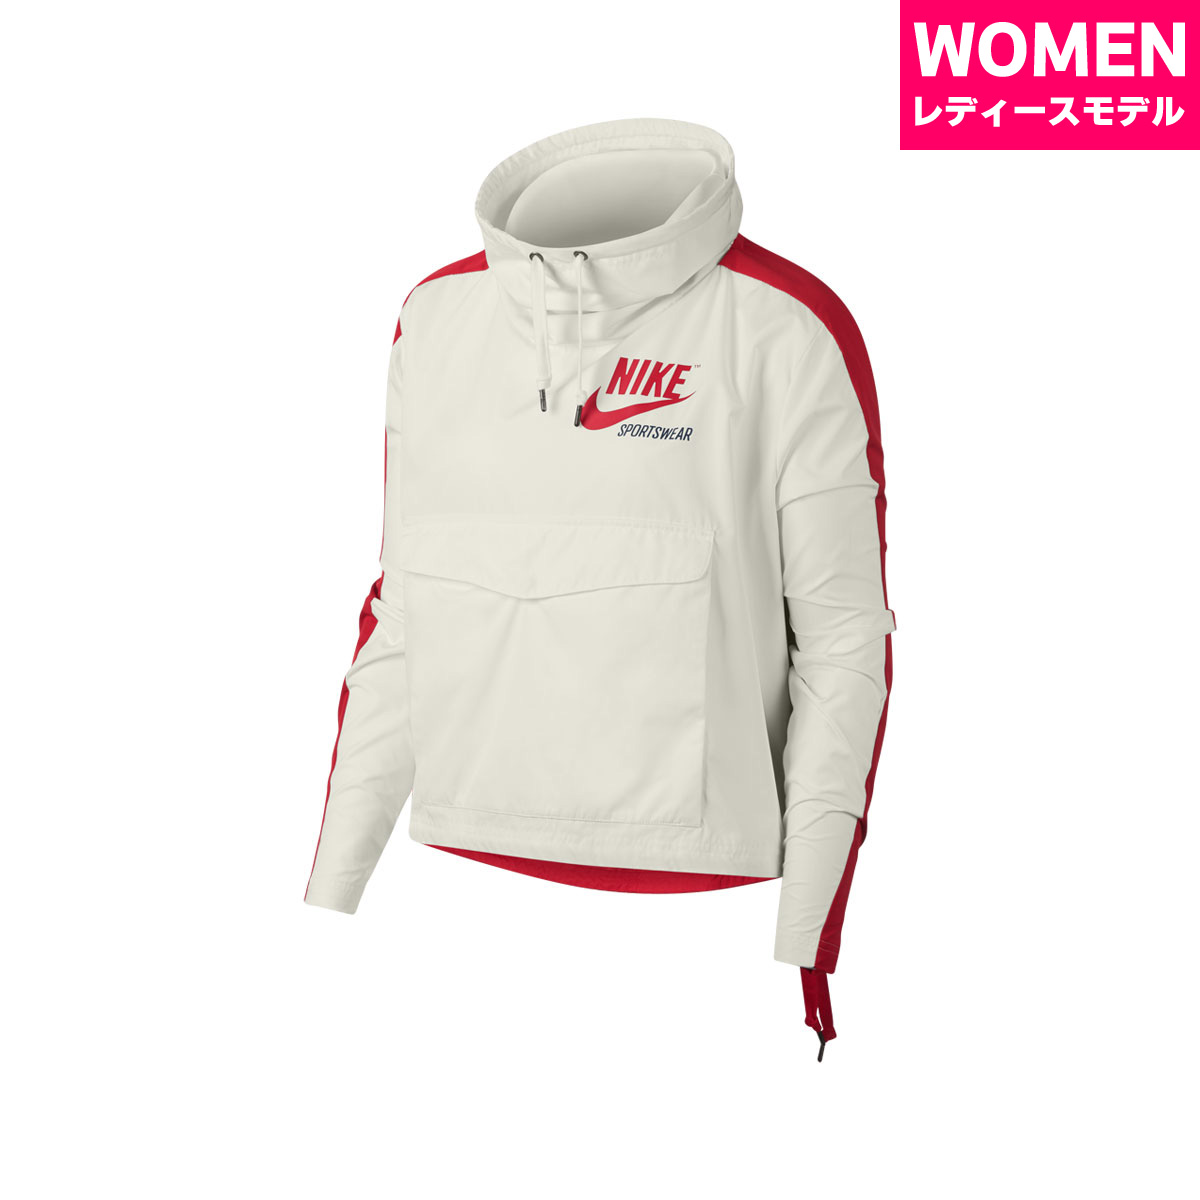 25fd59673516 NIKE AS W NSW JKT PO ARCHIVE (Nike women archive pullover jacket)  SAIL UNIVERSITY RED 18SP-I